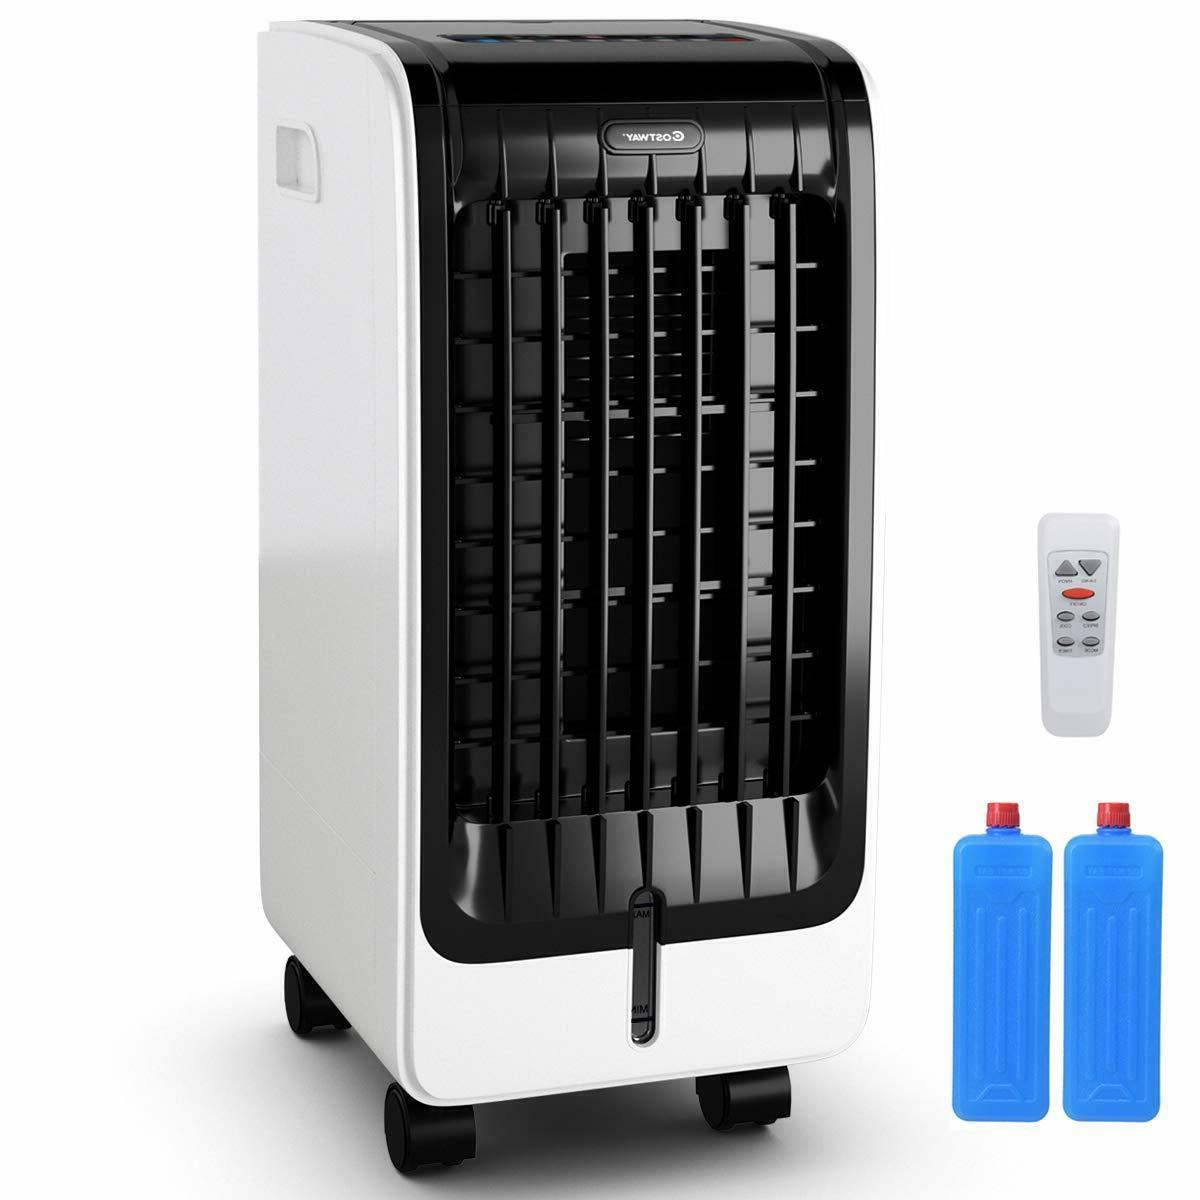 COSTWAY Air Cooler, Portable Evaporative Air Cooler with Fan